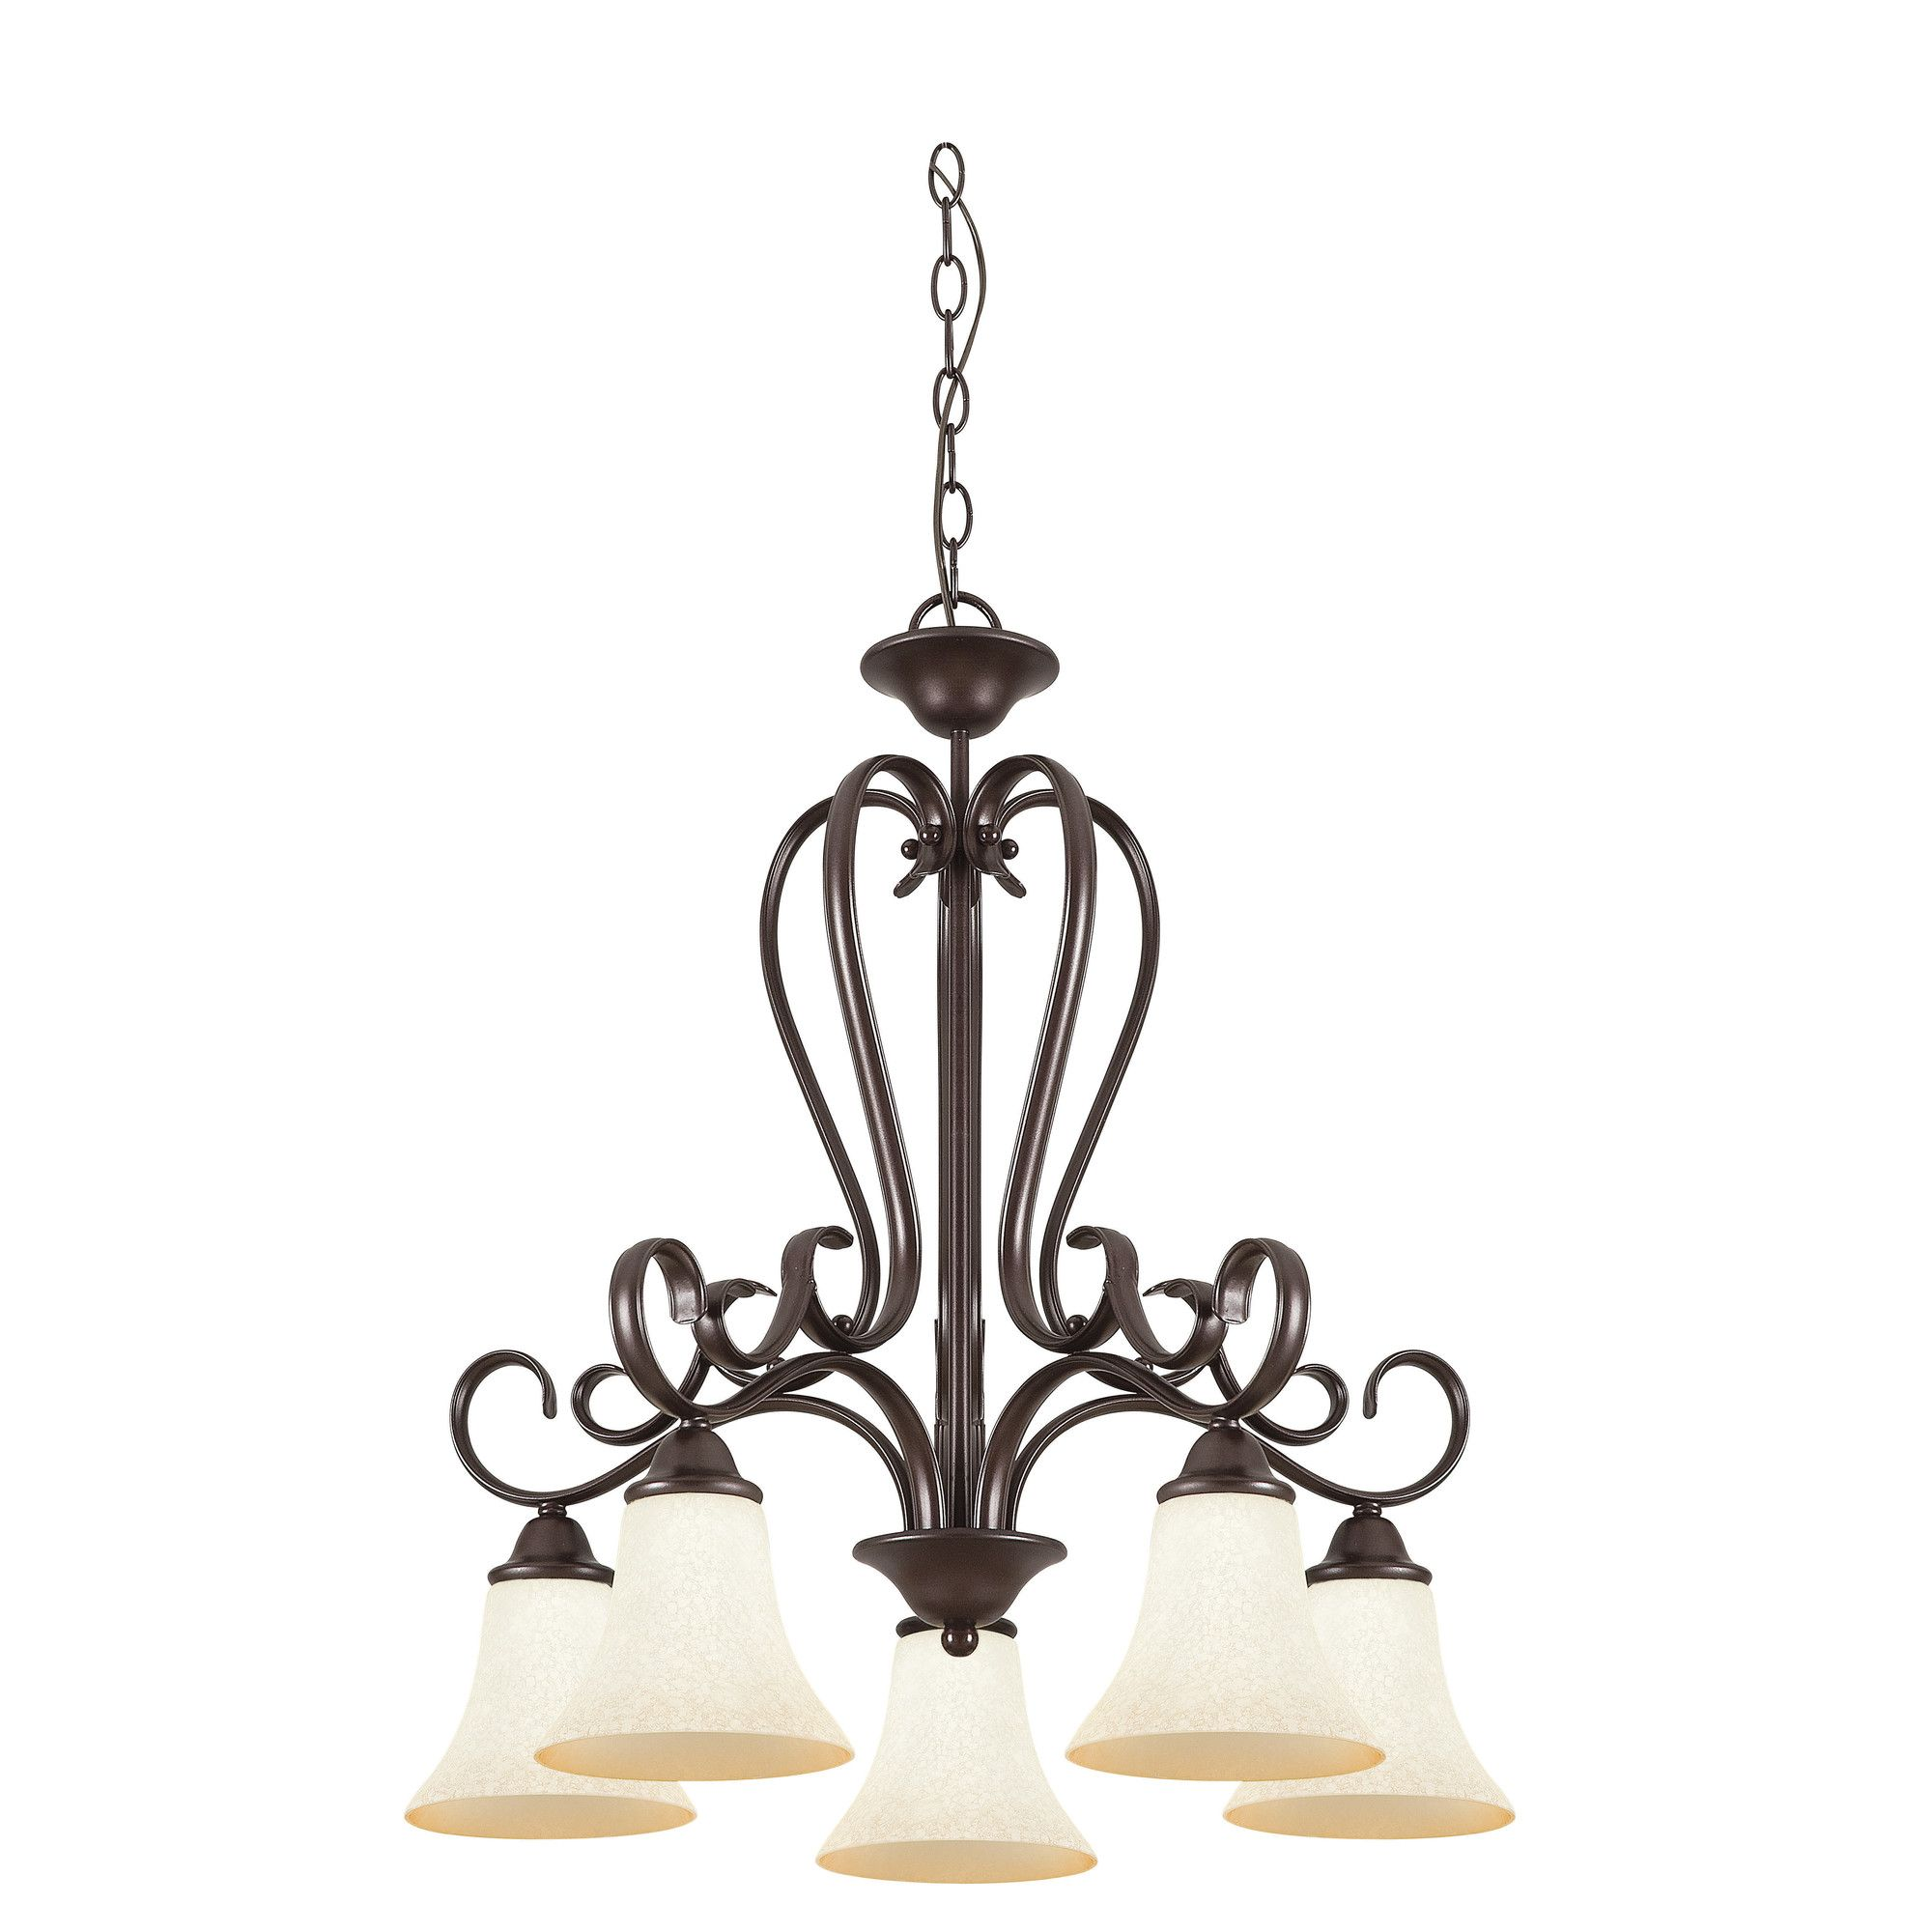 light mini chandelier products pinterest mini chandelier and